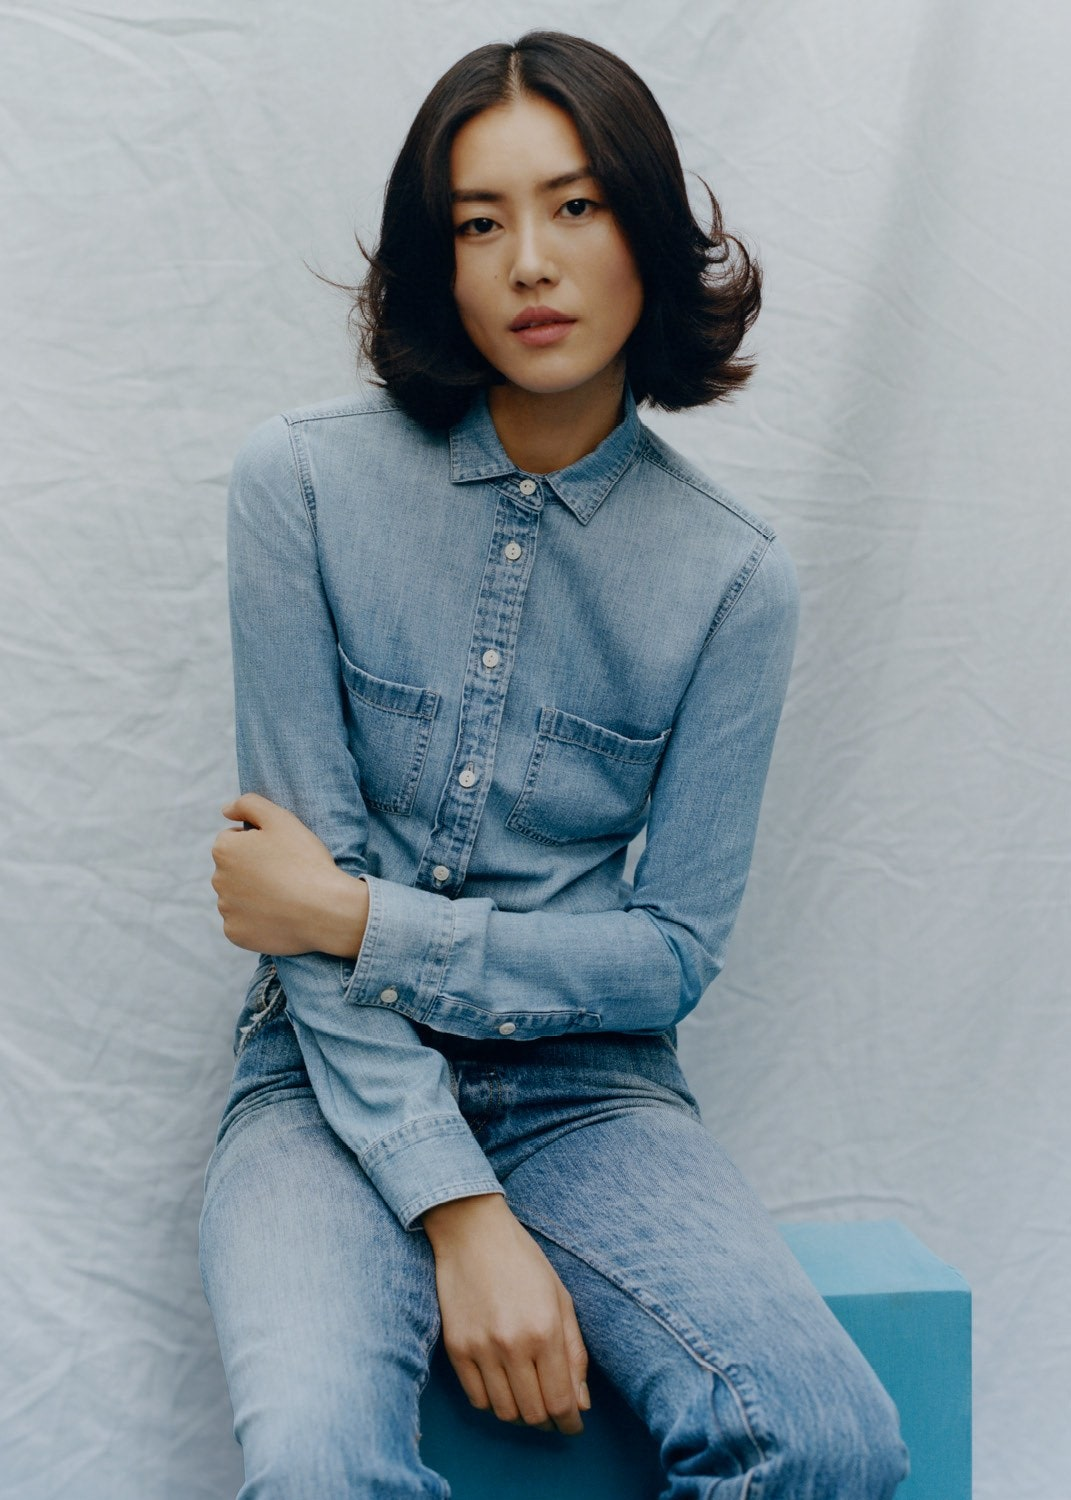 Liu Wen - J. Crew shirt. AG jeans. Photographed by Tyler Mitchell, Vogue, April 2020